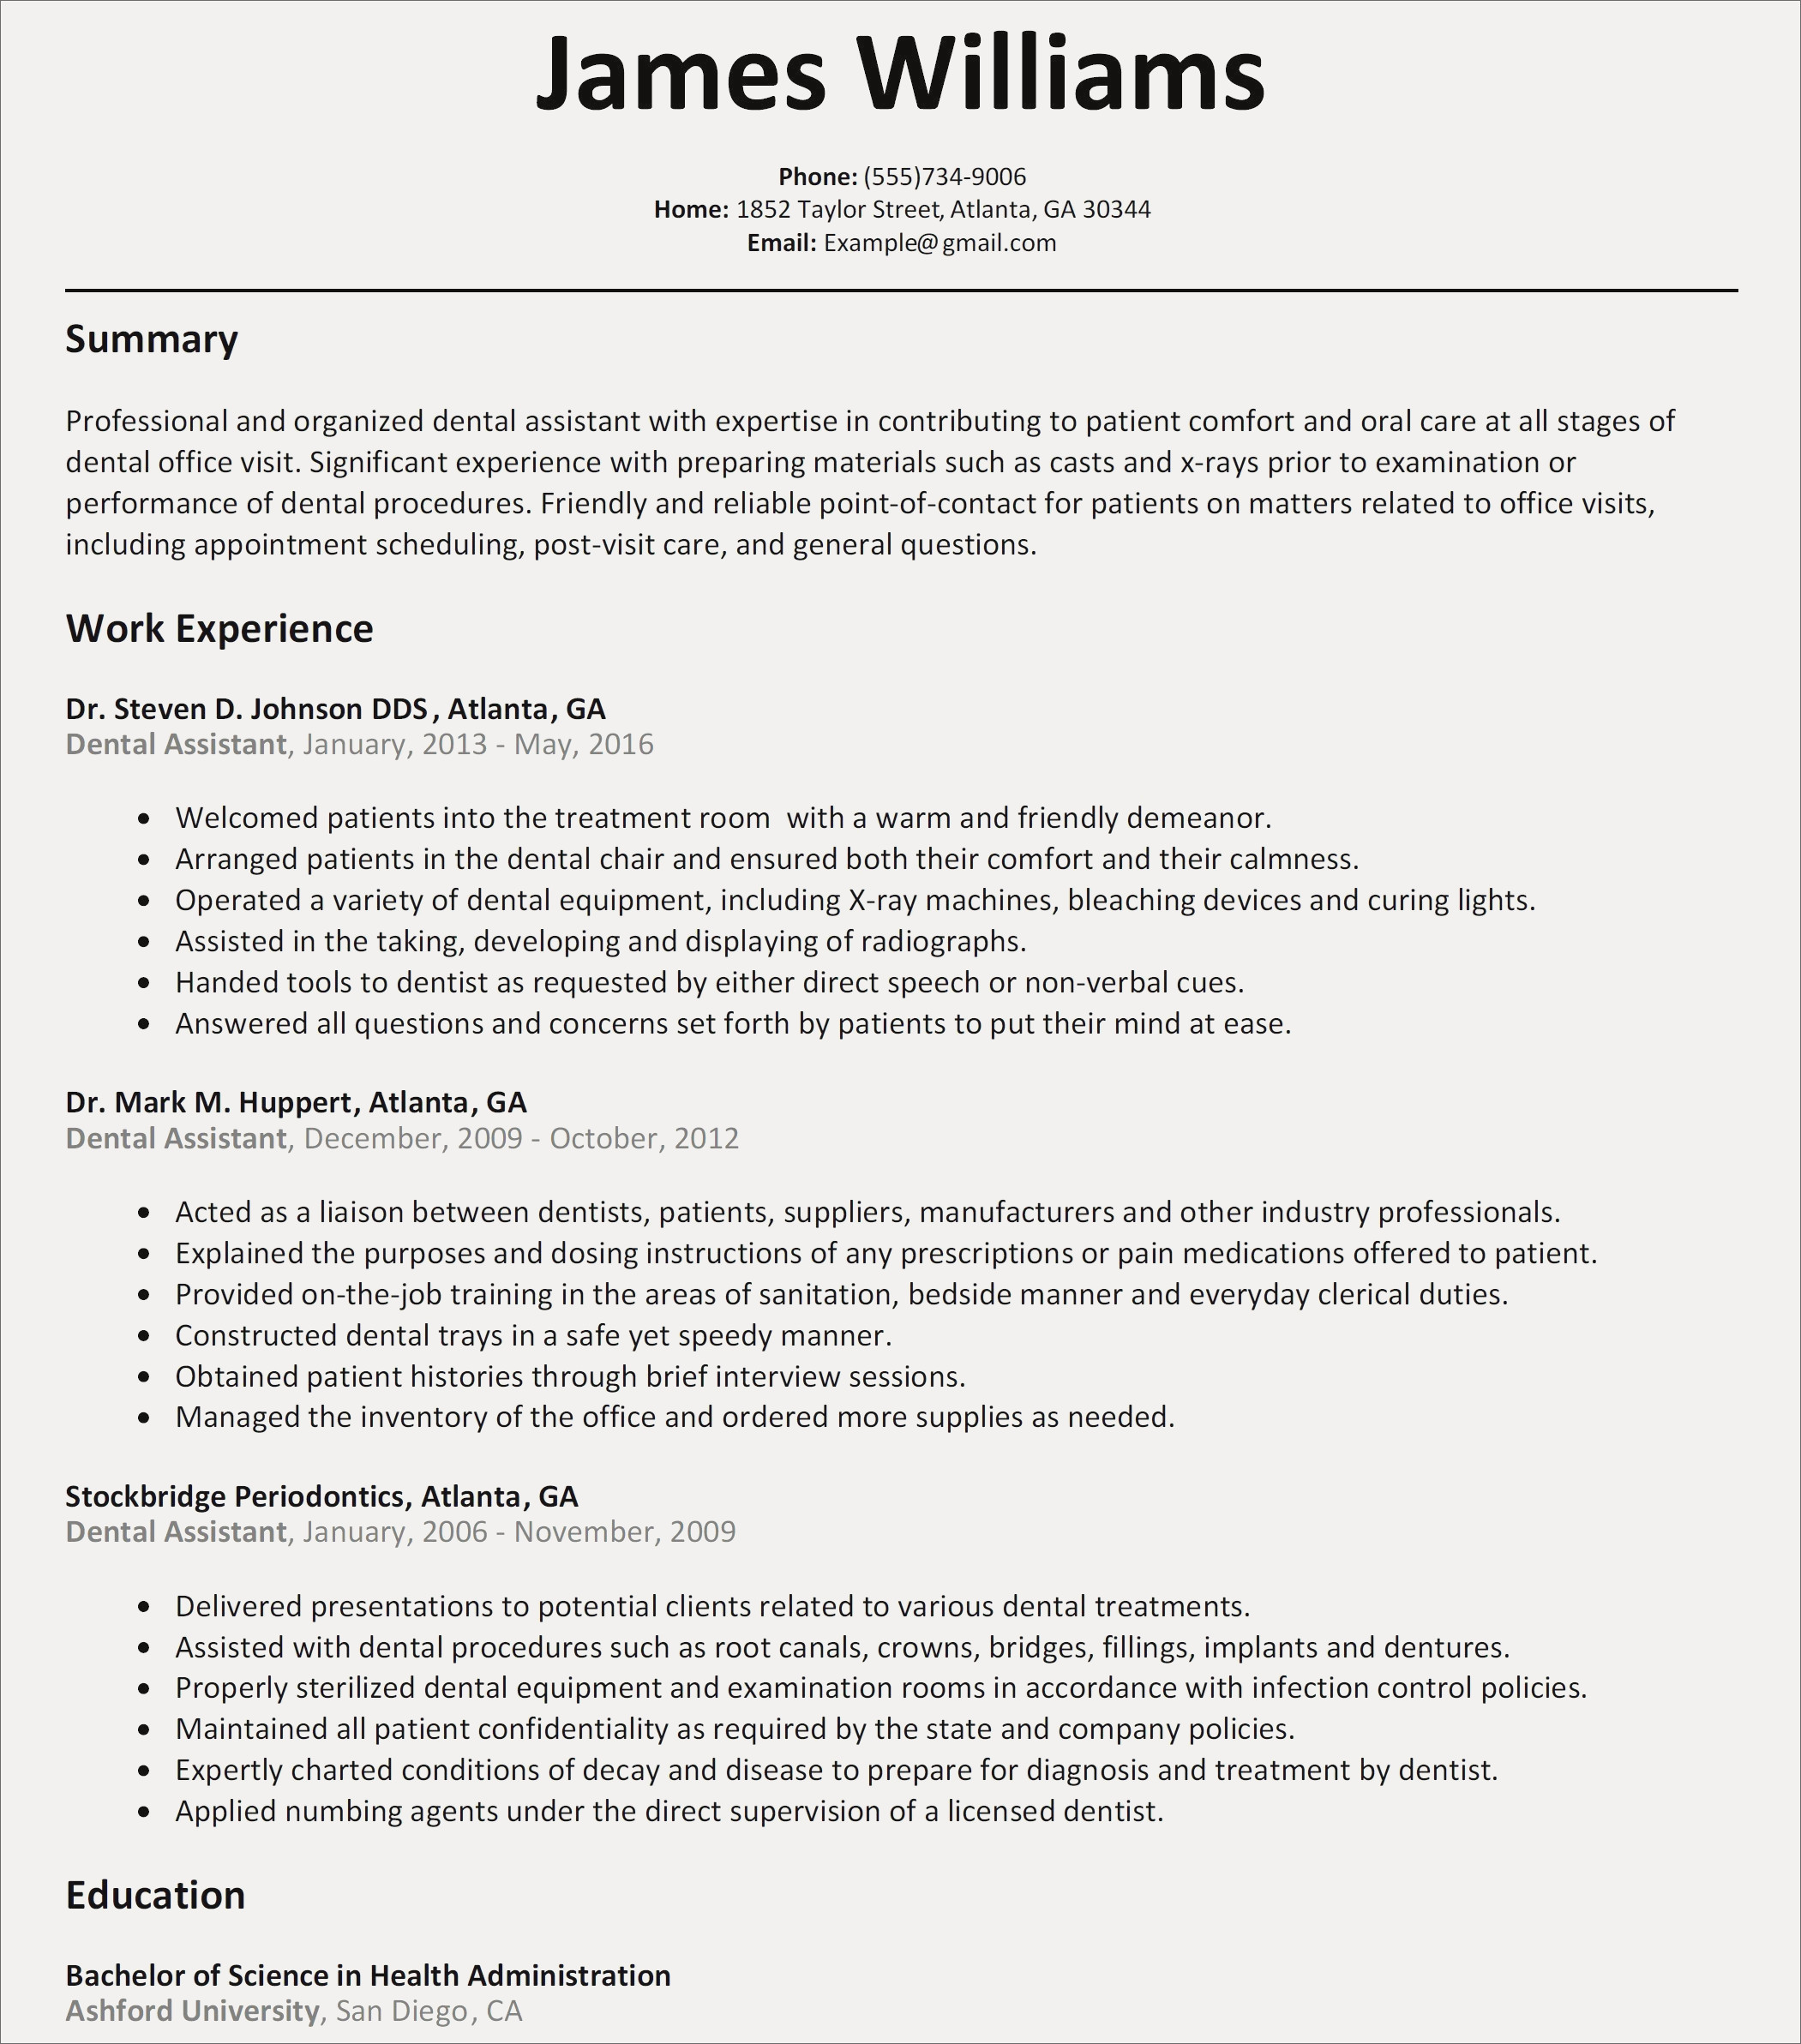 Scientist Resume Samples - How to Make A Good Cover Letter New How to Write A Cover Letter for